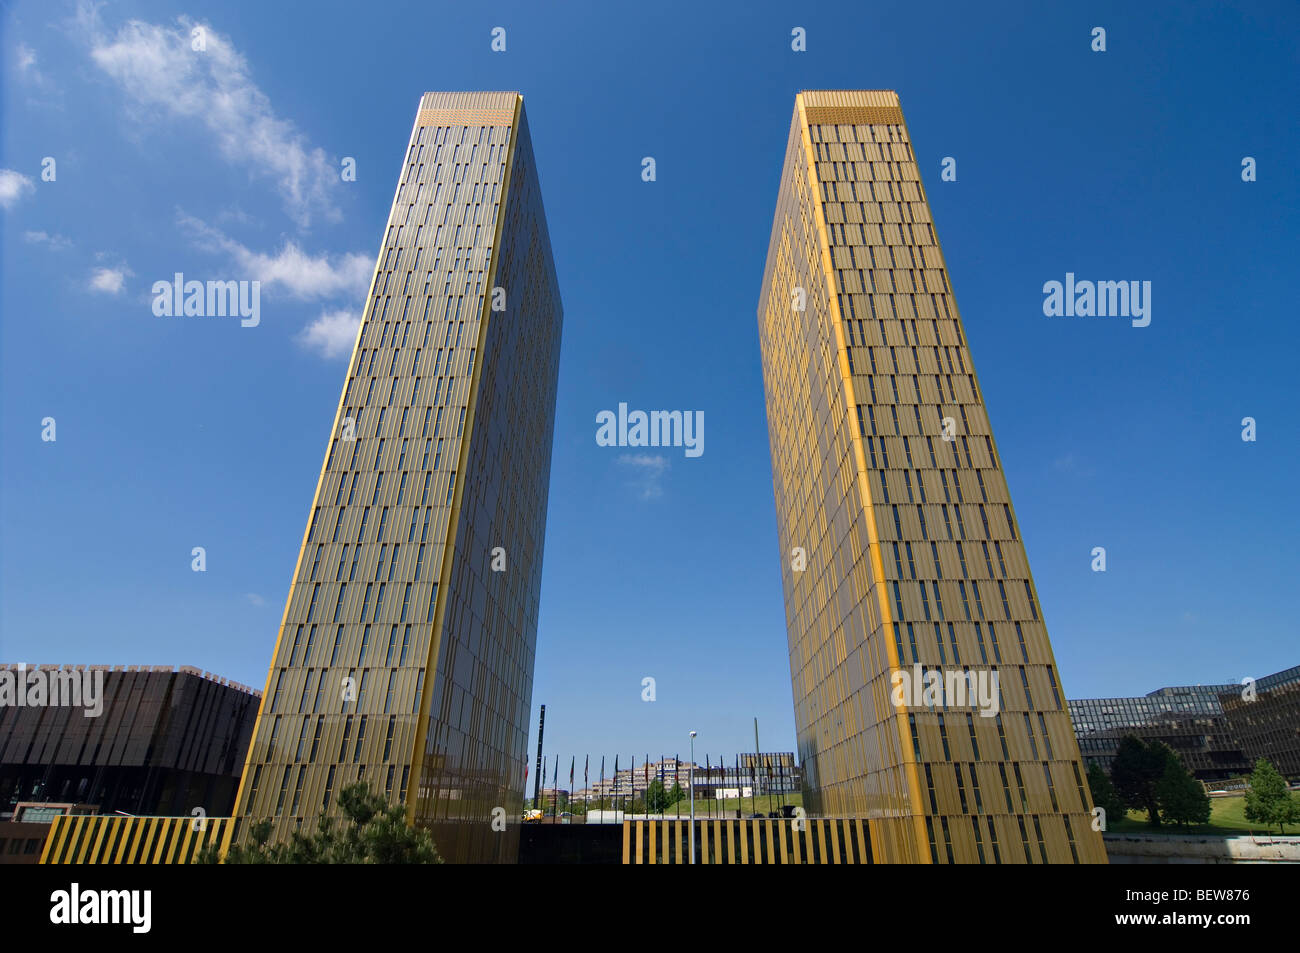 Twin towers, European Court of Justice, Kirchberg plateau, Luxembourg, wide-angle view - Stock Image